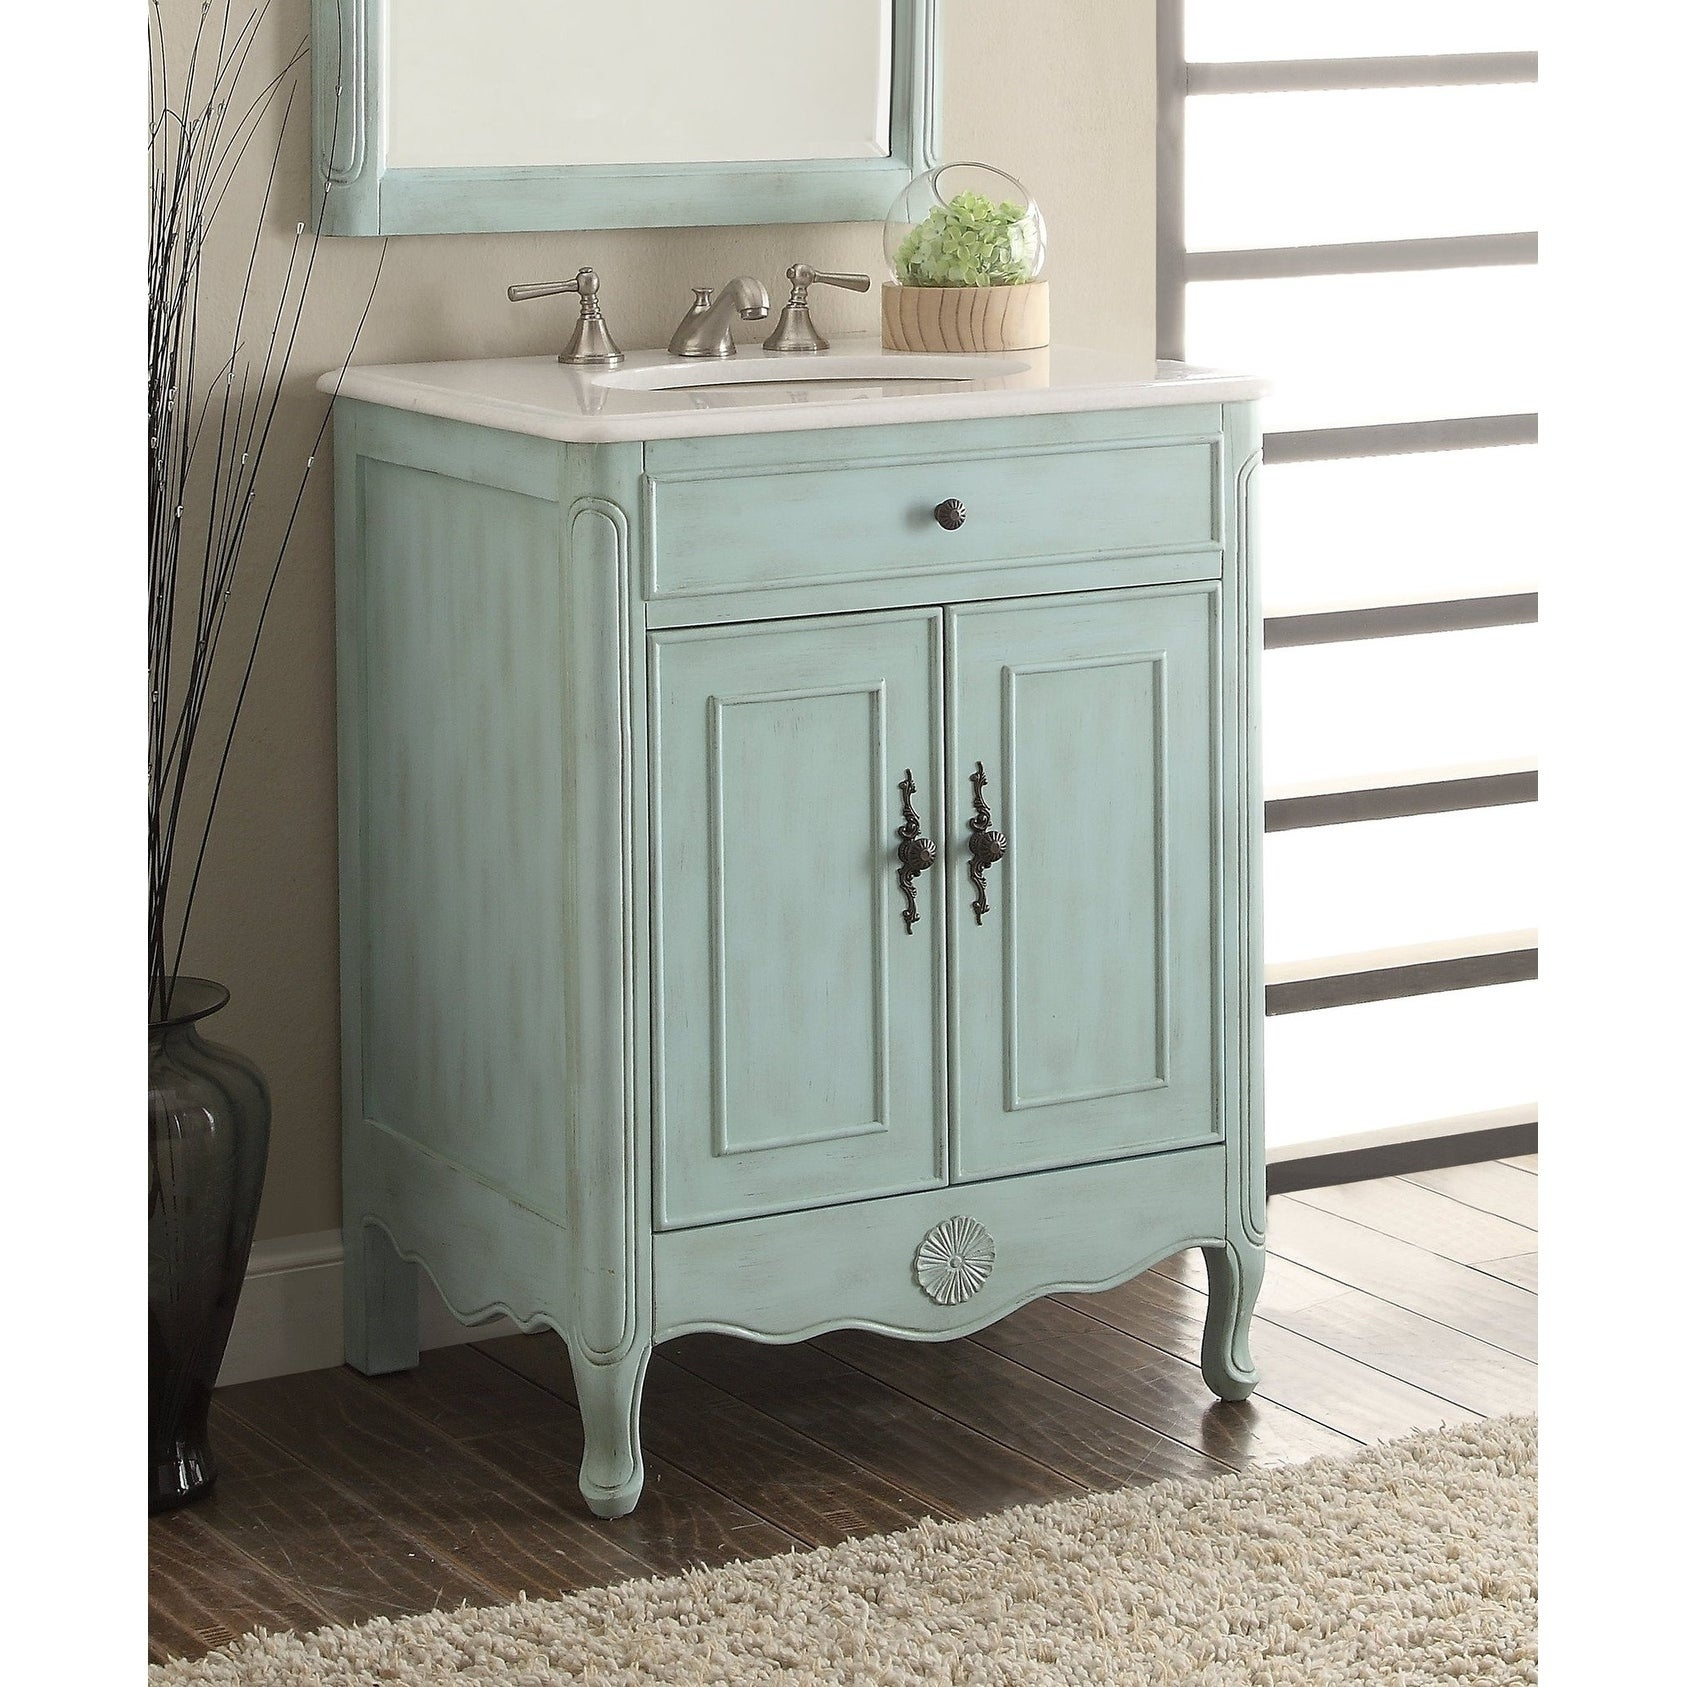 26 Benton Collection Daleville L Blue Vintage Bathroom Vanity Sink Free Shipping Today 20729035